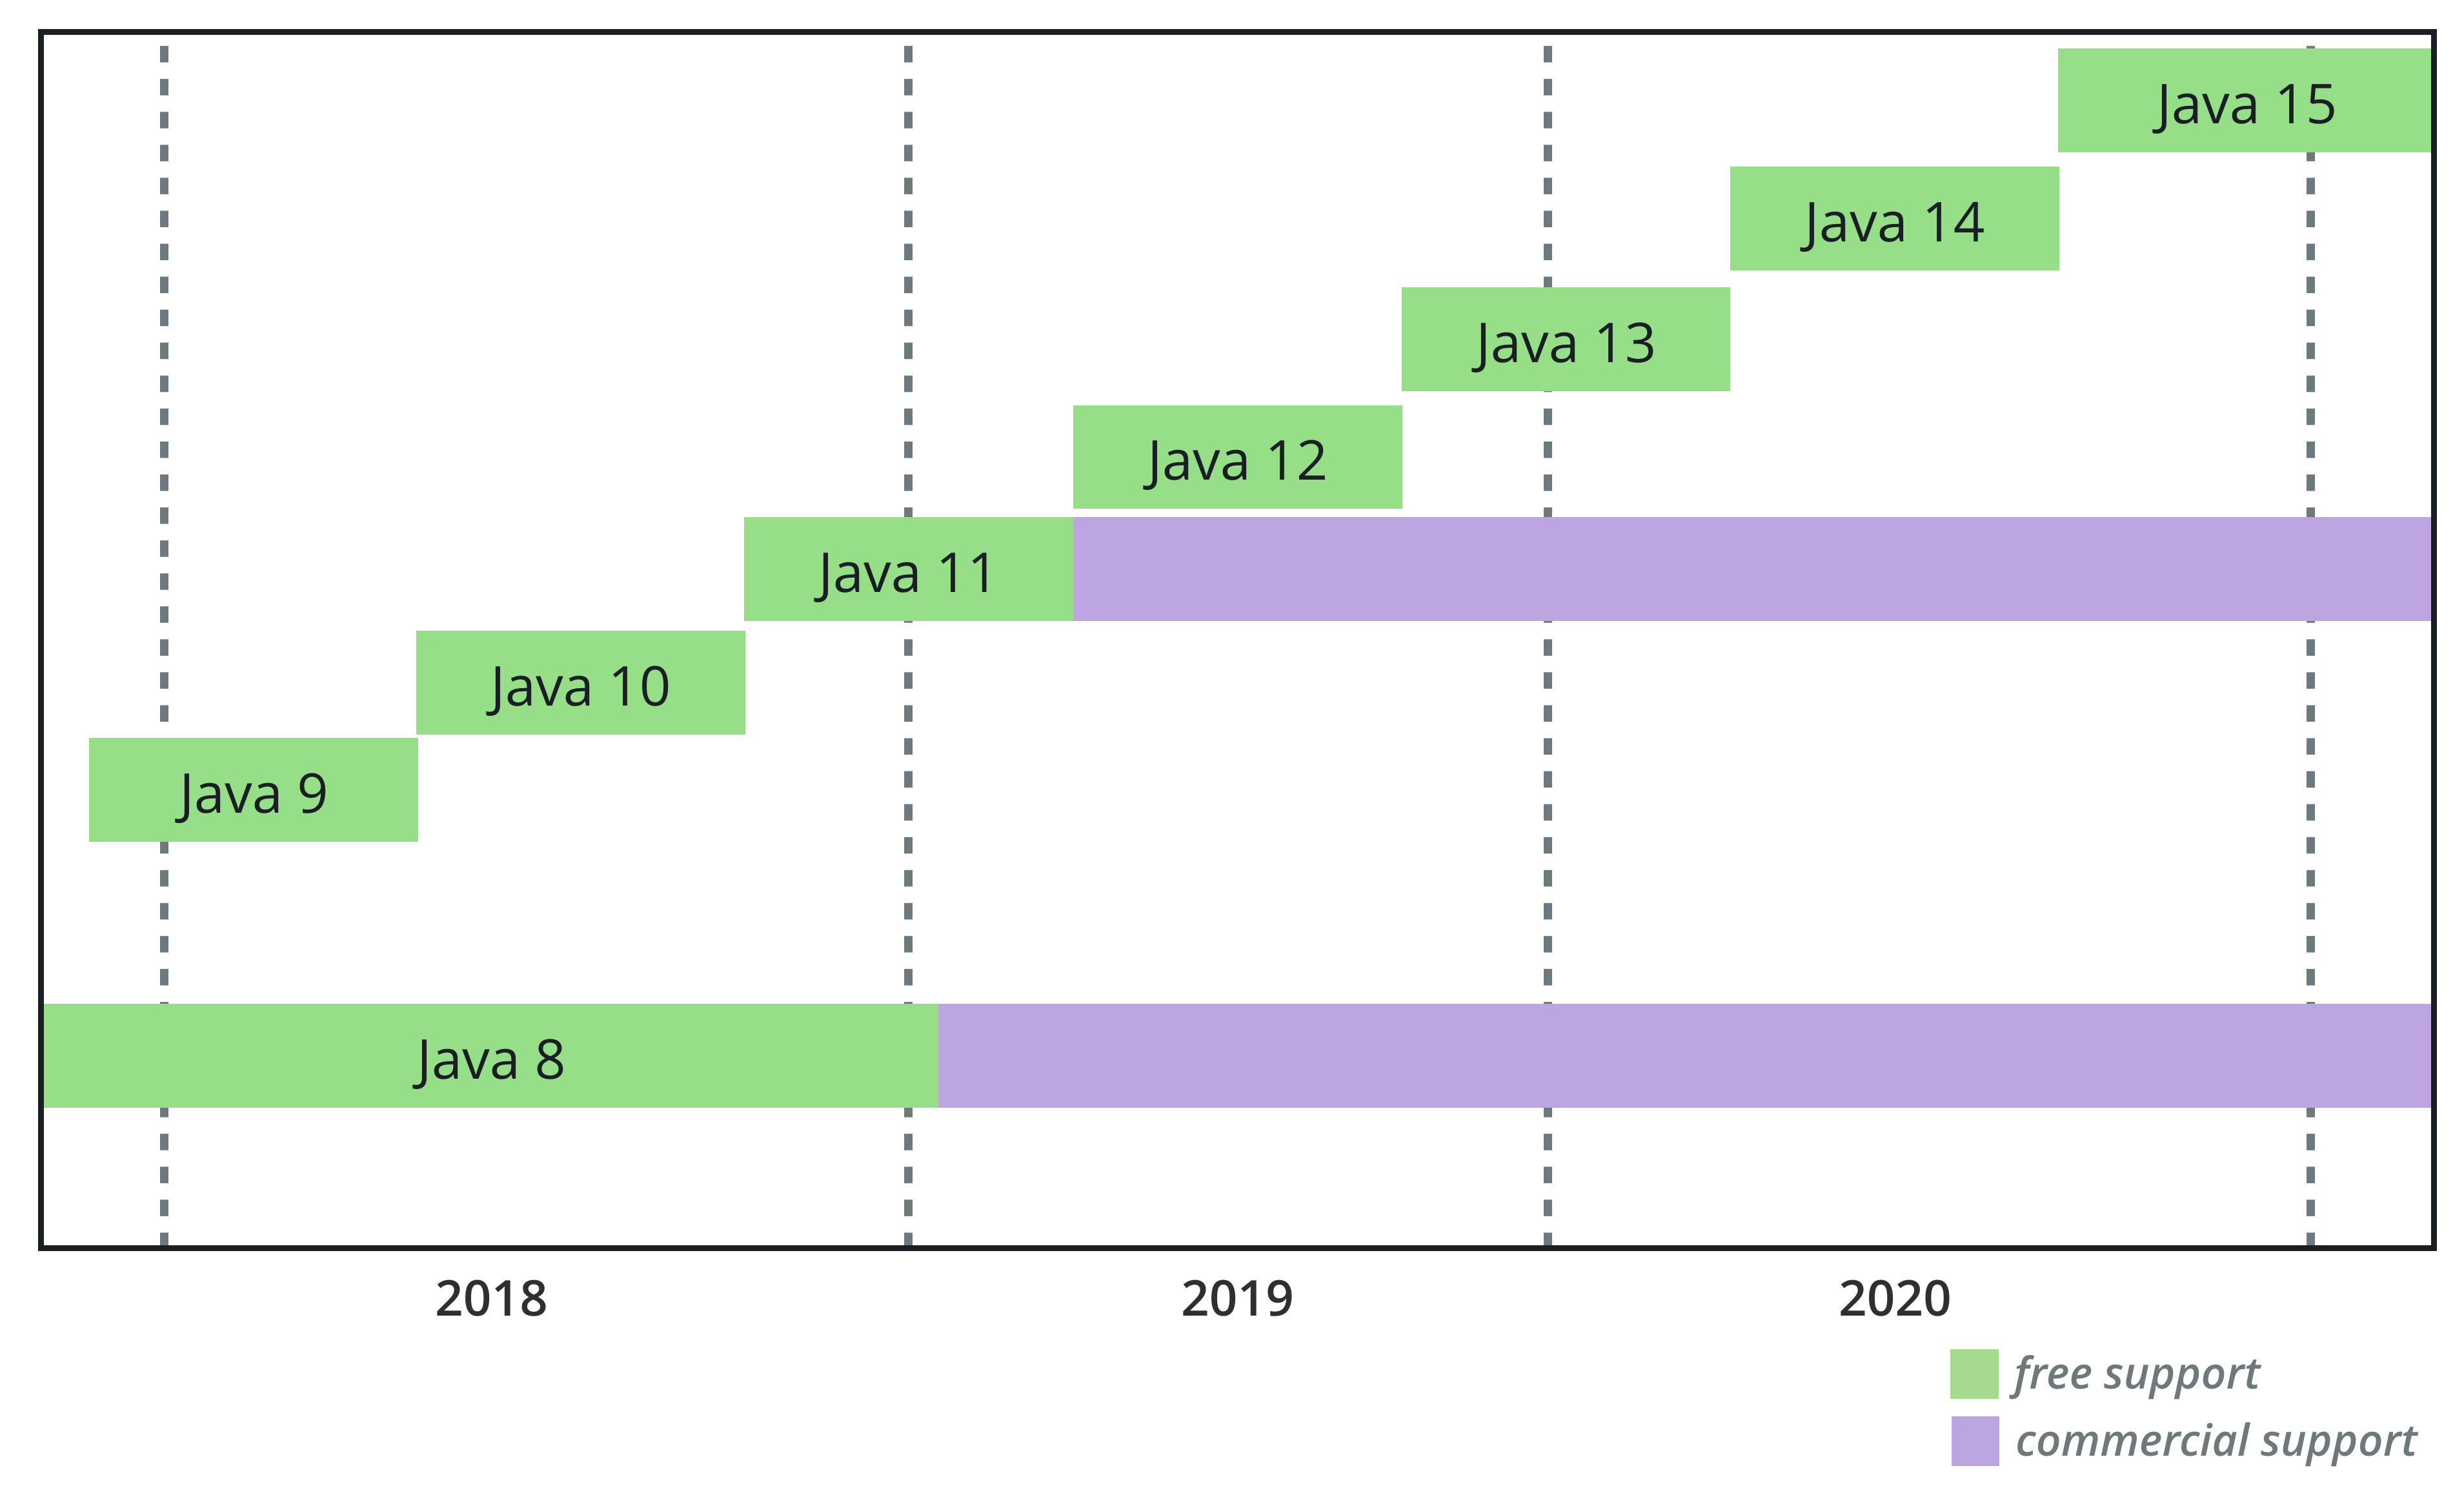 Oracle Java roadmap